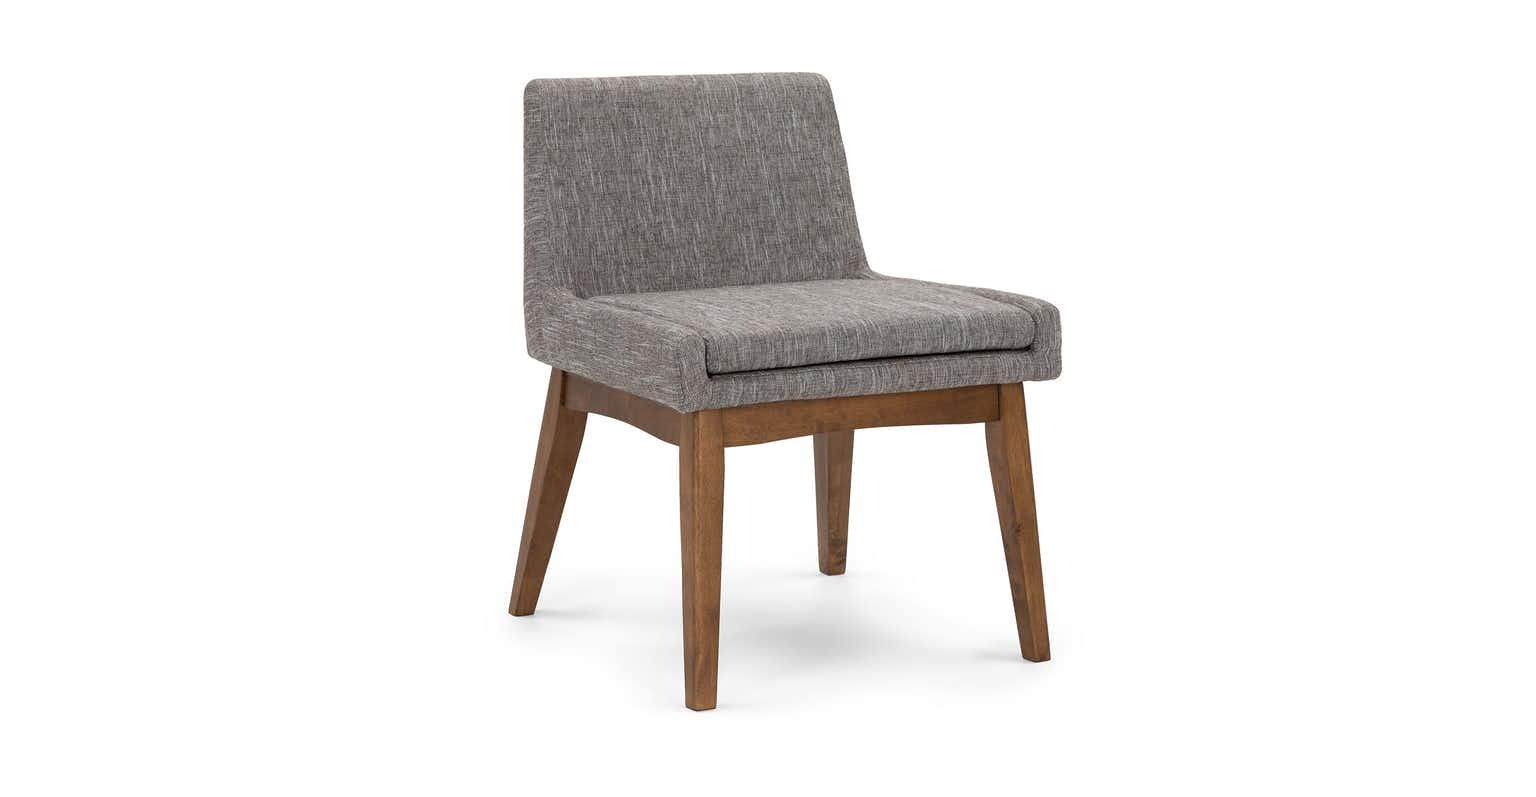 Chanel Volcanic Gray Dining Chair Gray Dining Chairs Midcentury Modern Dining Chairs Dining Chairs